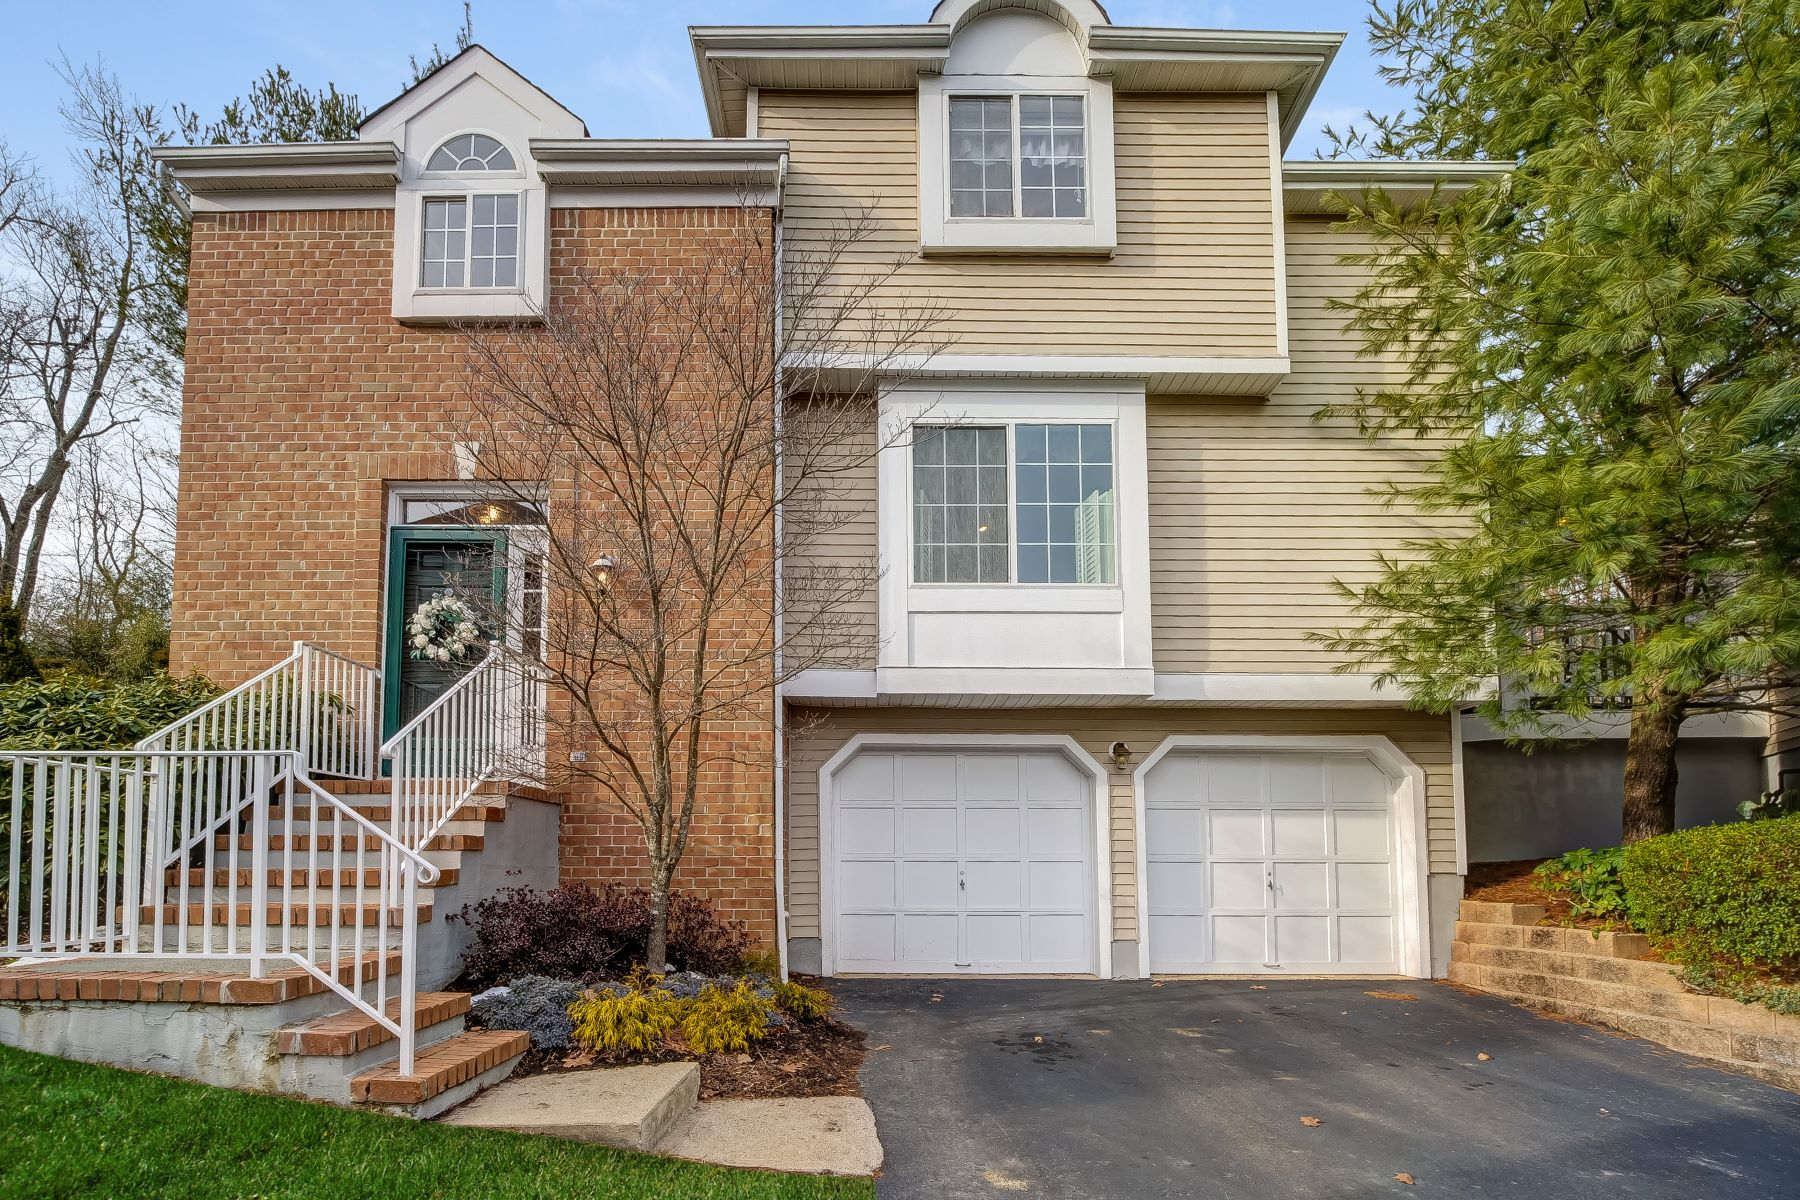 townhouses للـ Sale في Serene Townhome 24 Schindler Terrace, Long Hill Township, New Jersey 07933 United States